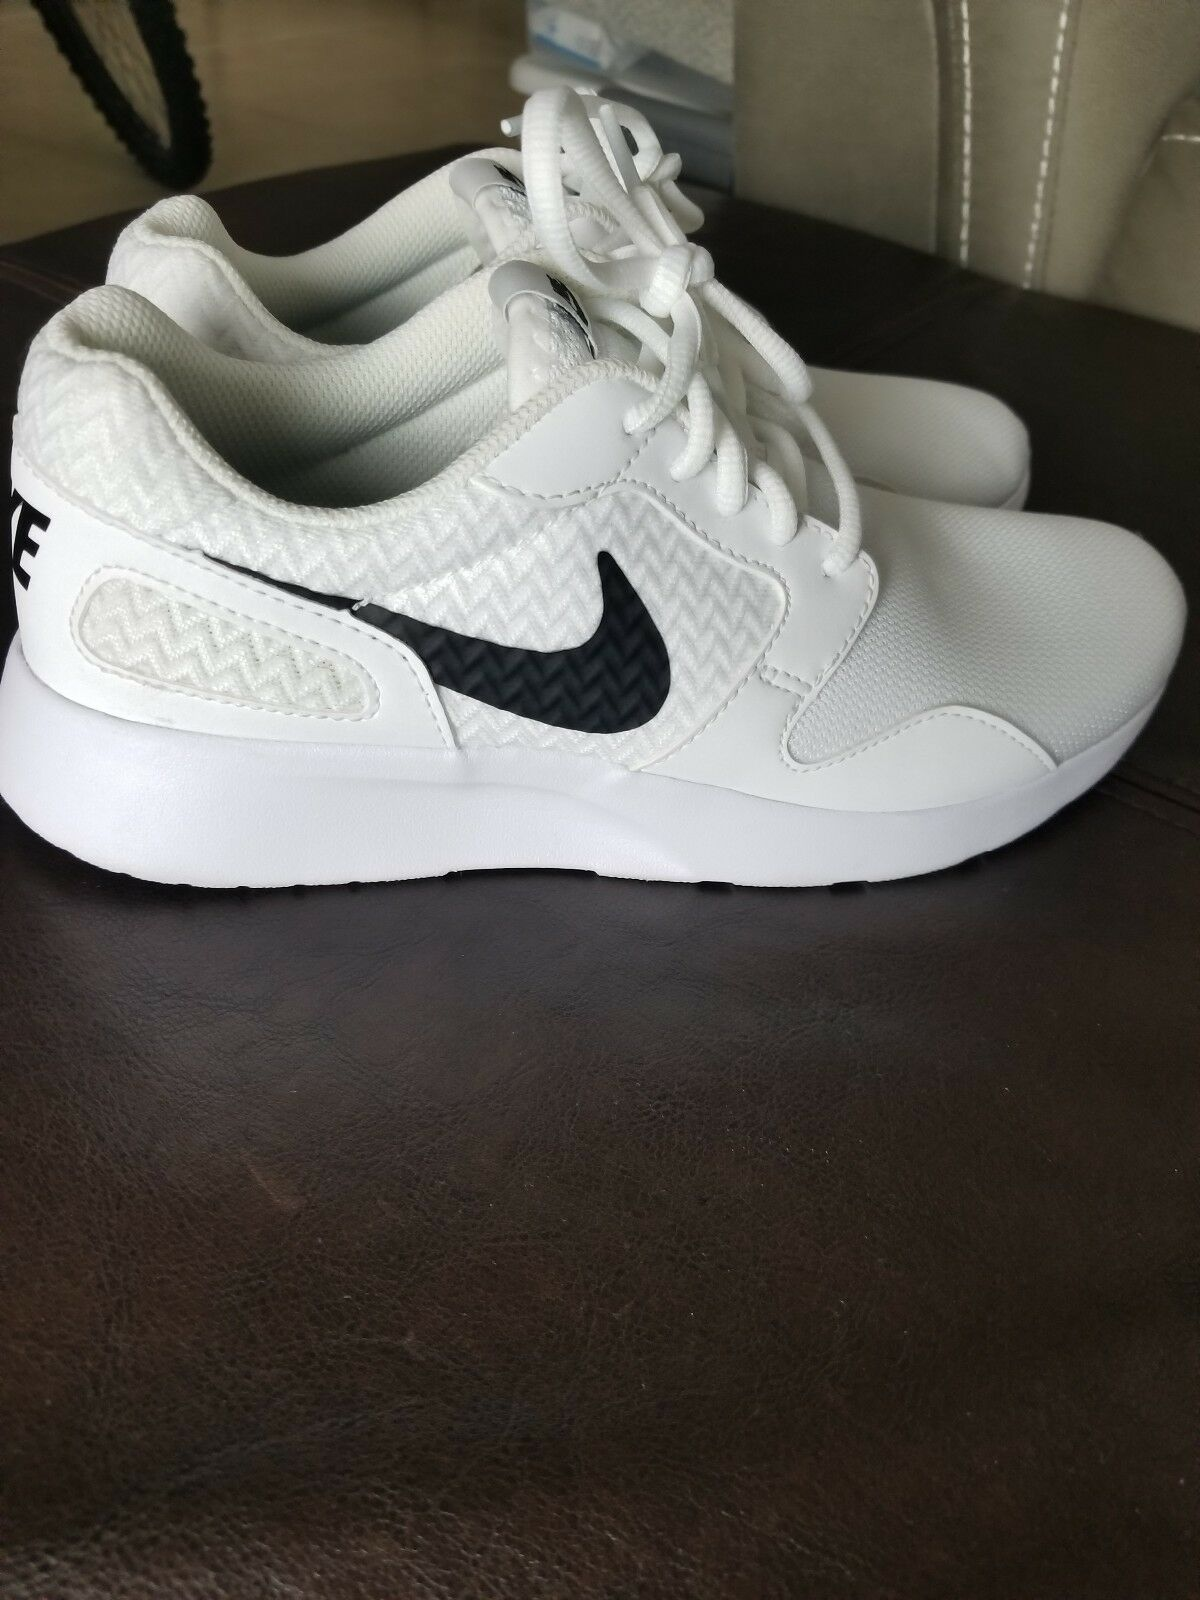 Nike Air Kaishi Trainers Trainers Trainers White Black 654845-103 Womens Sneaker shoes Size 7 67a6f8